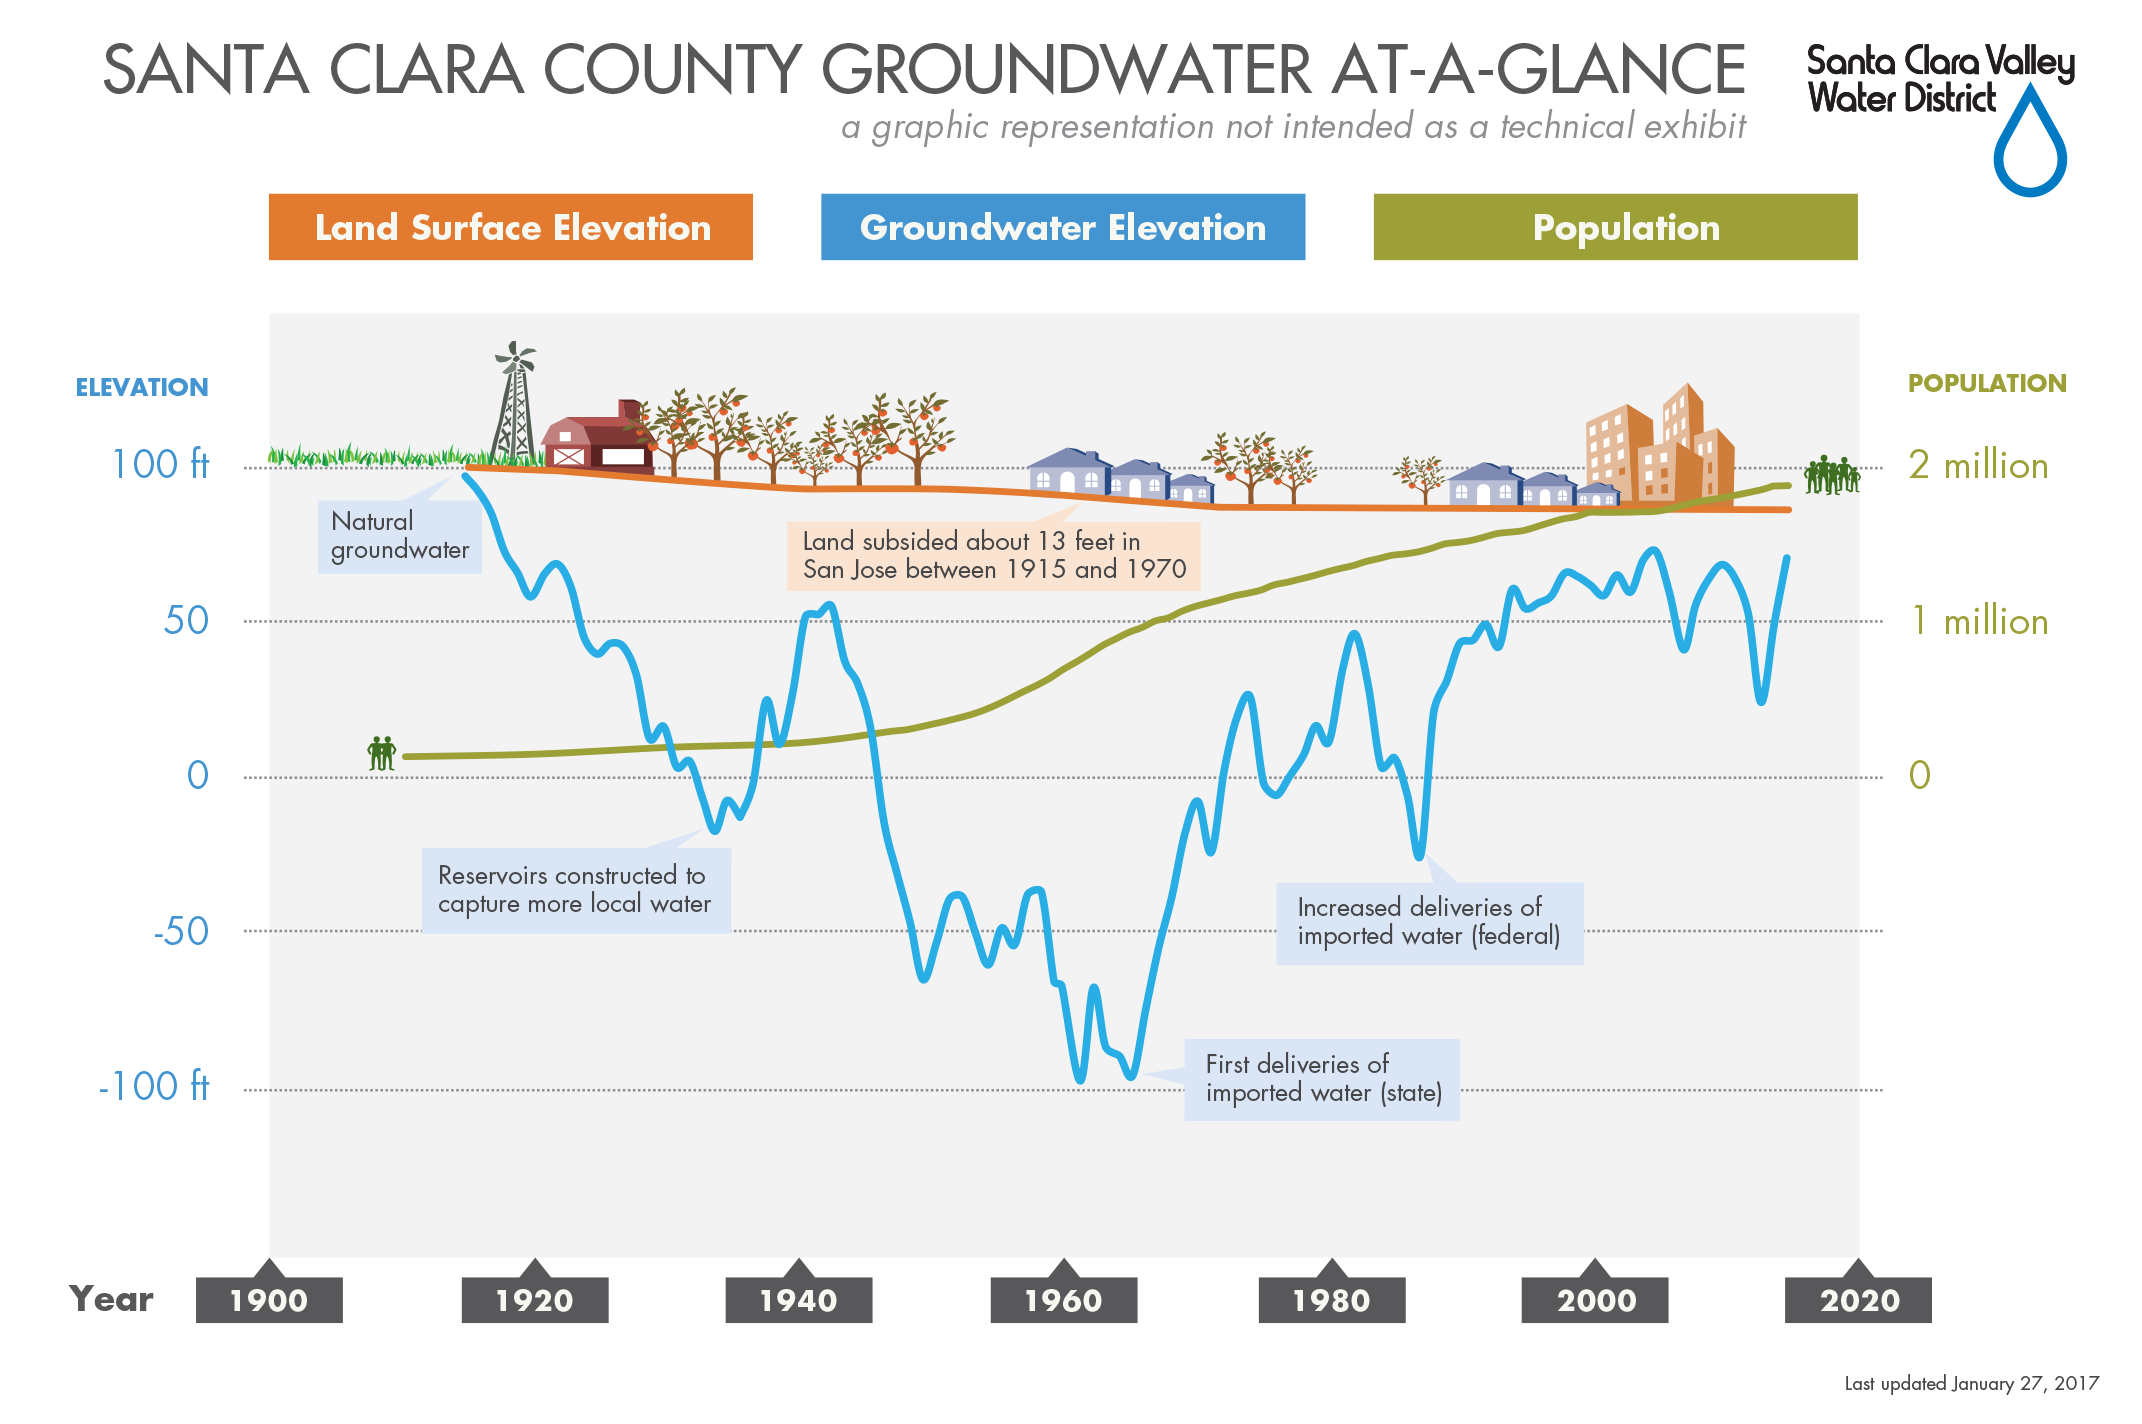 Land elevation, groundwater level, and population in the Santa Clara Valley Water District since its founding in the 1920s